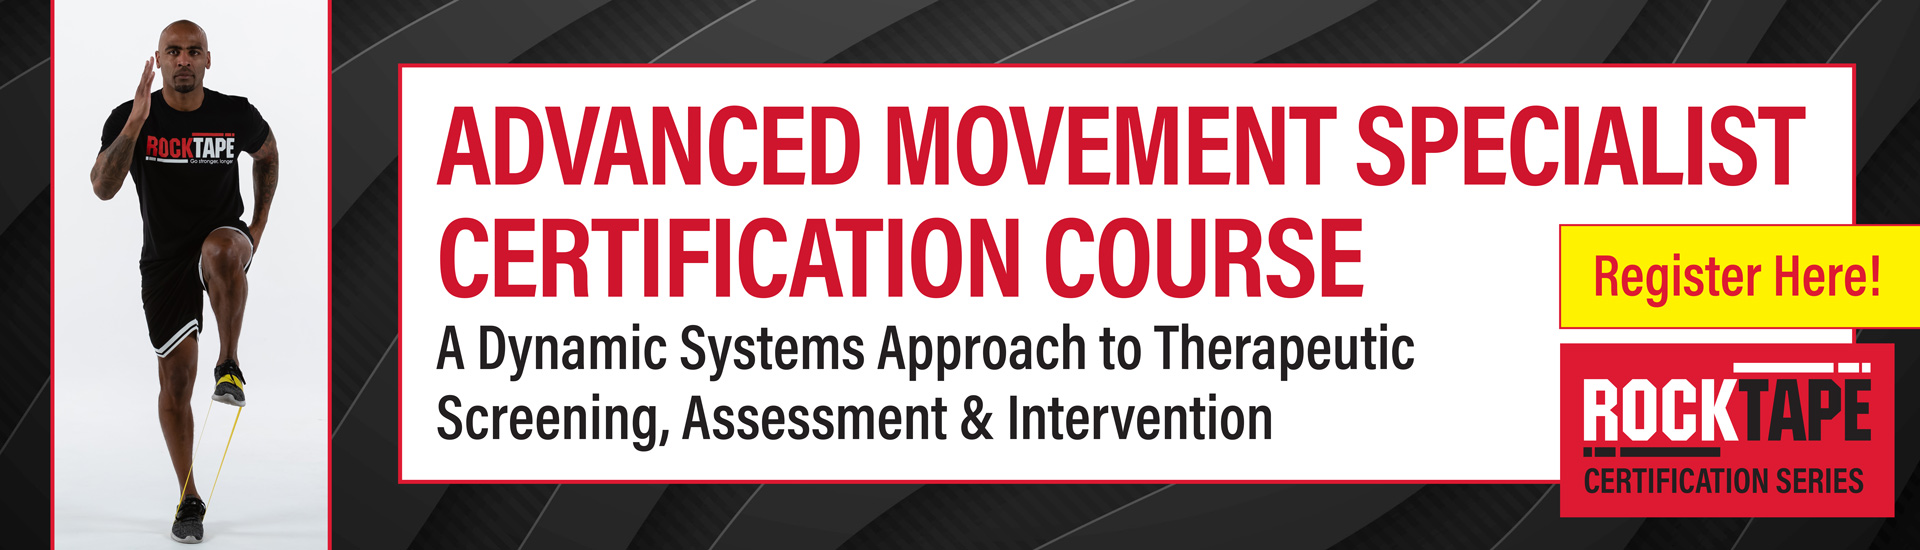 Advanced Movement Specialist Certification Course: A Dynamic Systems Approach to Therapeutic Screening, Assessment & Intervention